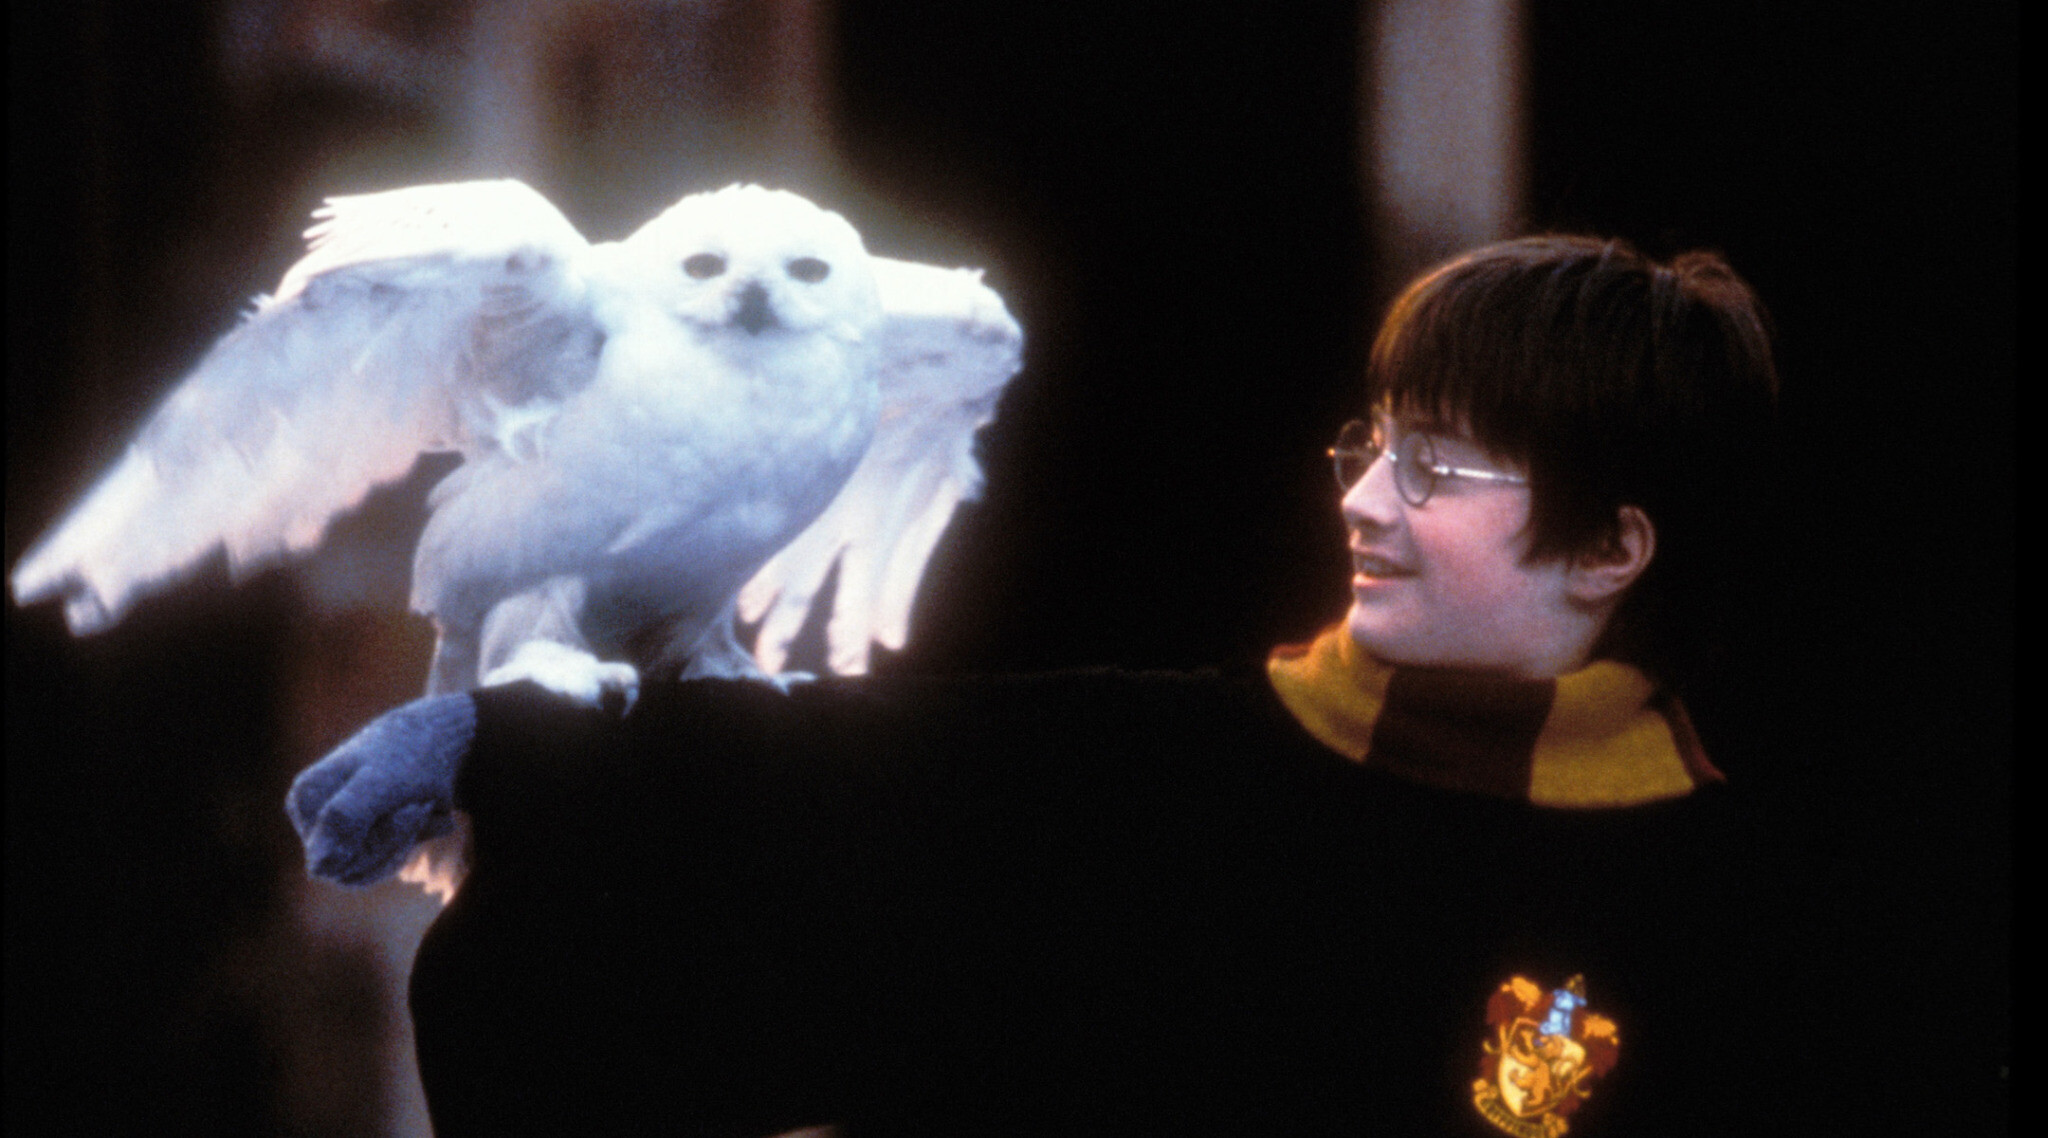 You can watch Daniel Radcliffe read Harry Potter and the Philosopher's Stone